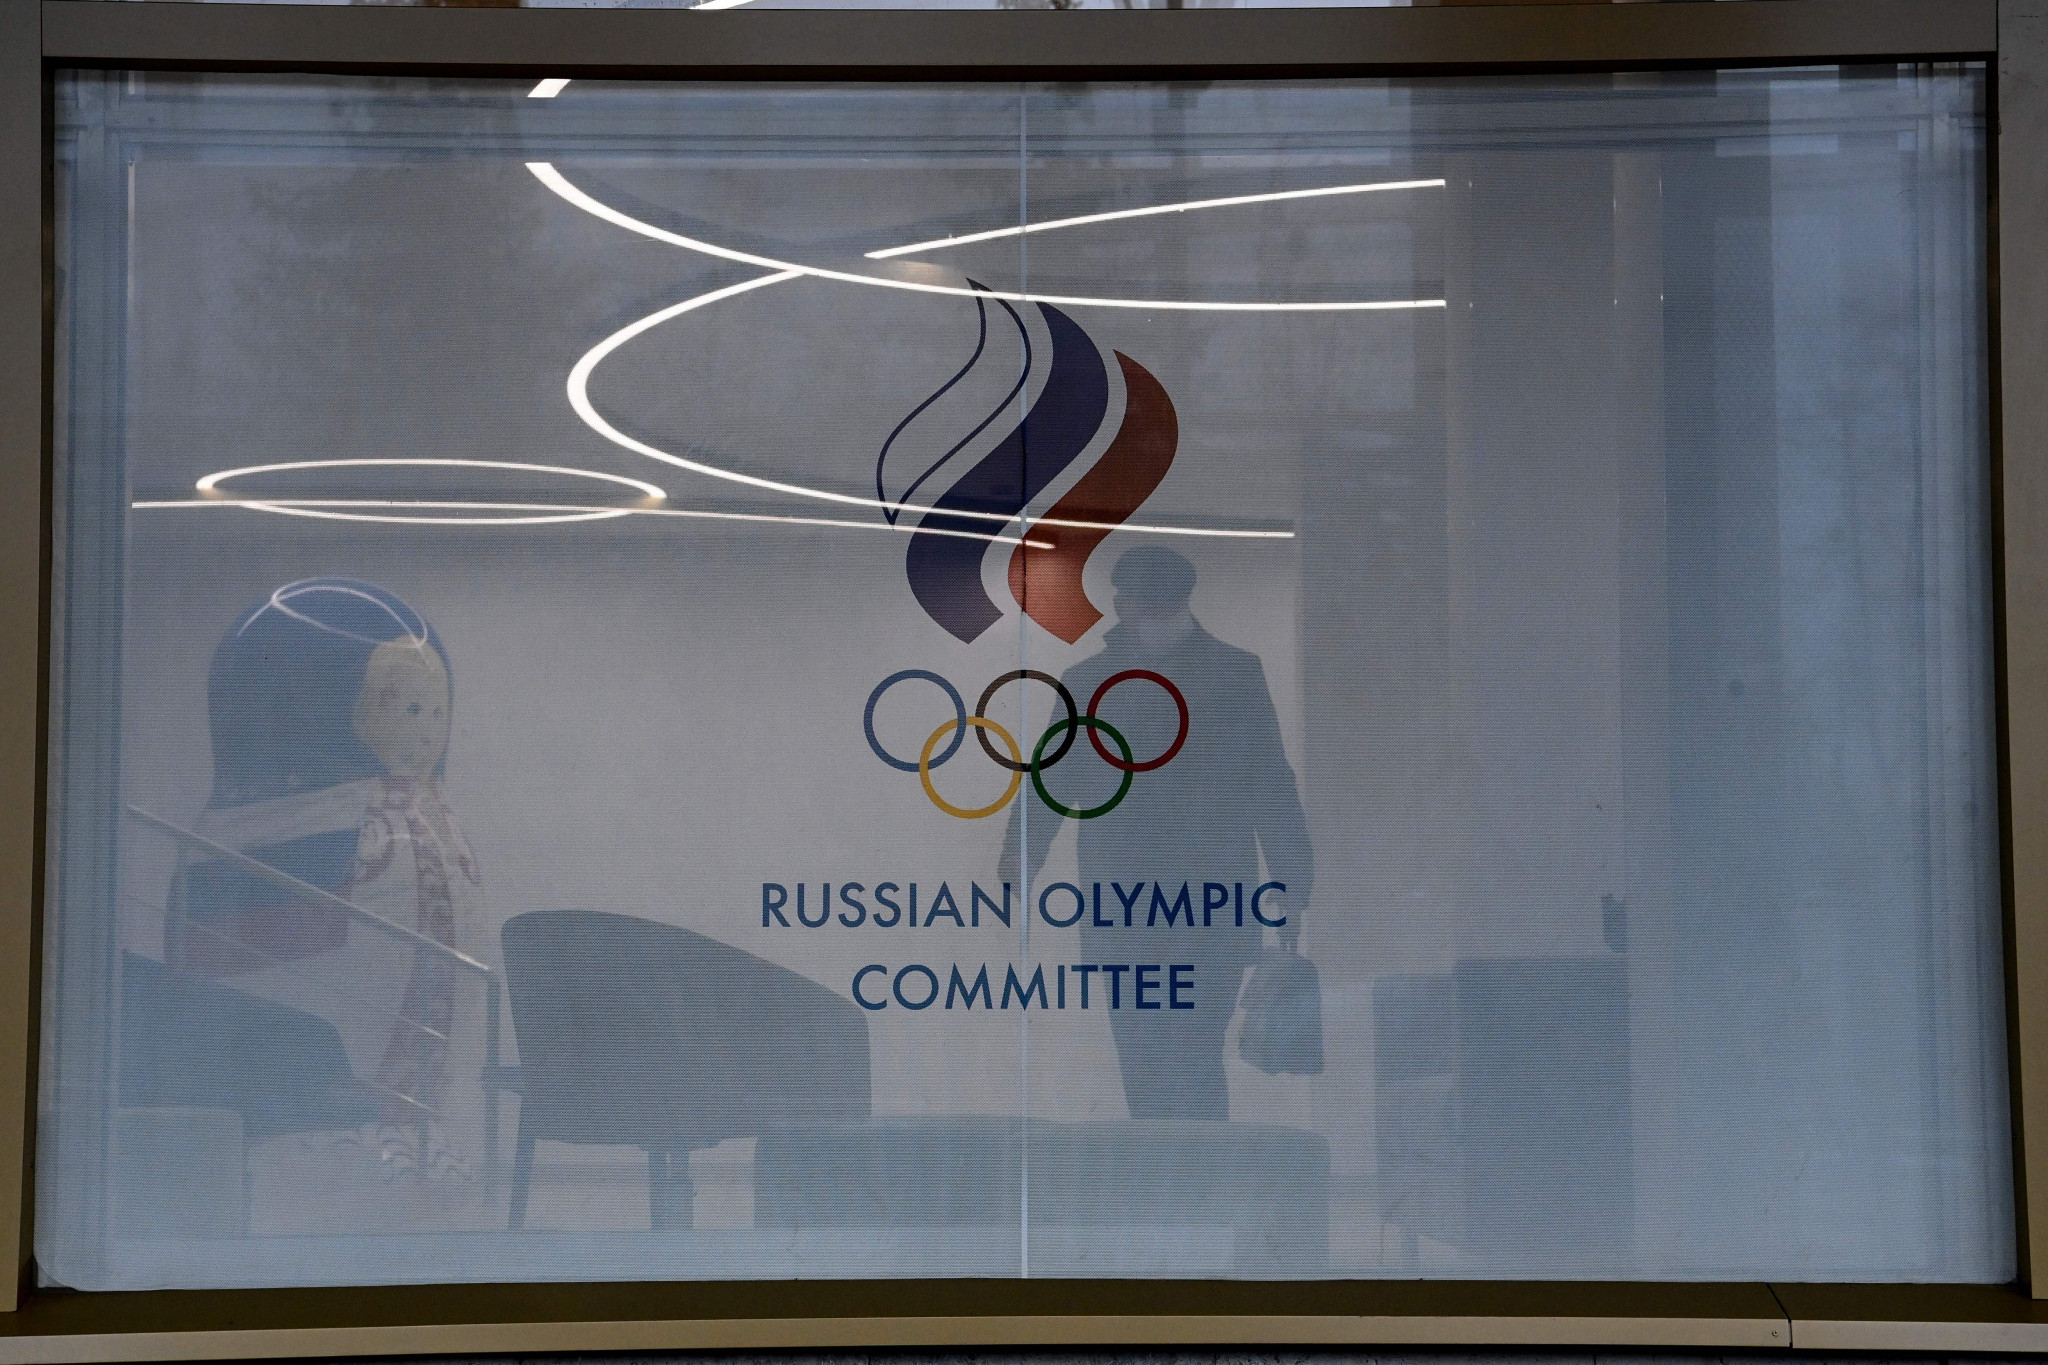 Russian Olympic Committee flag expected to be used at IIHF World Championships